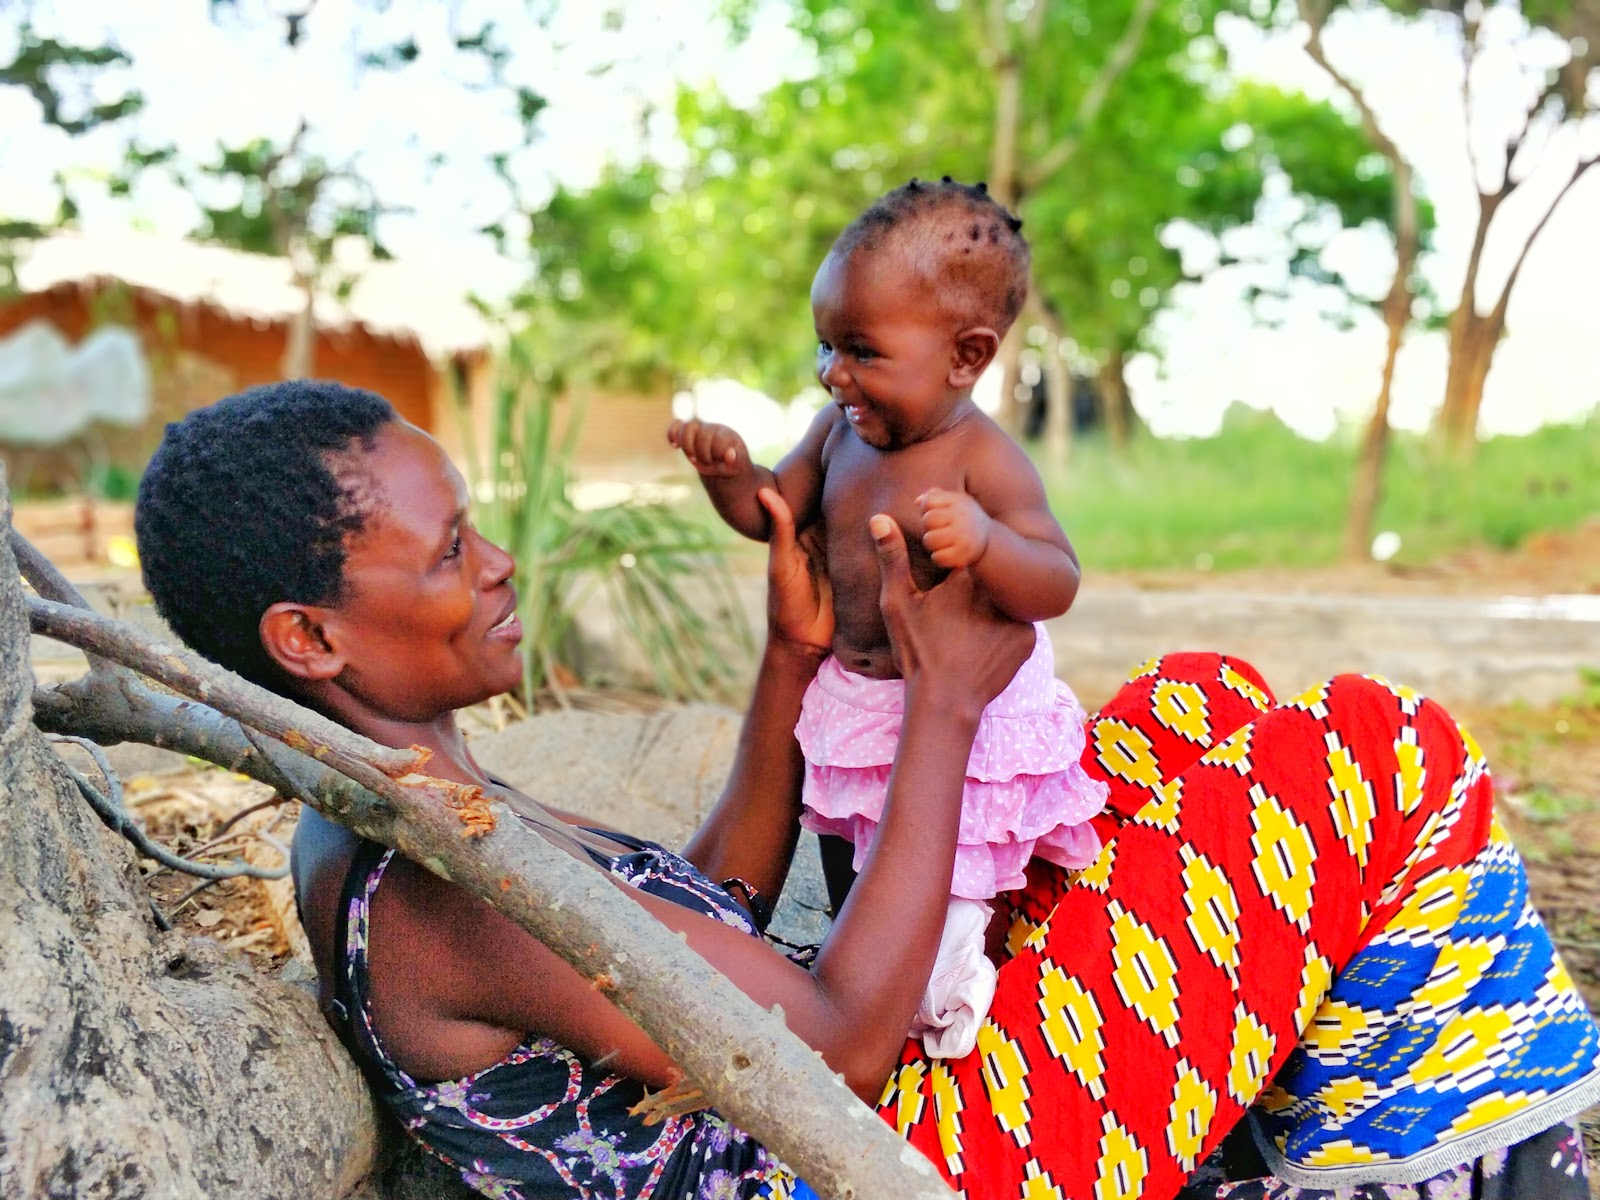 A happy young mother with her infant in Zomba, Malawi. Photo © 2018 Nandi Bwanali/One Community, Courtesy of Photoshare.